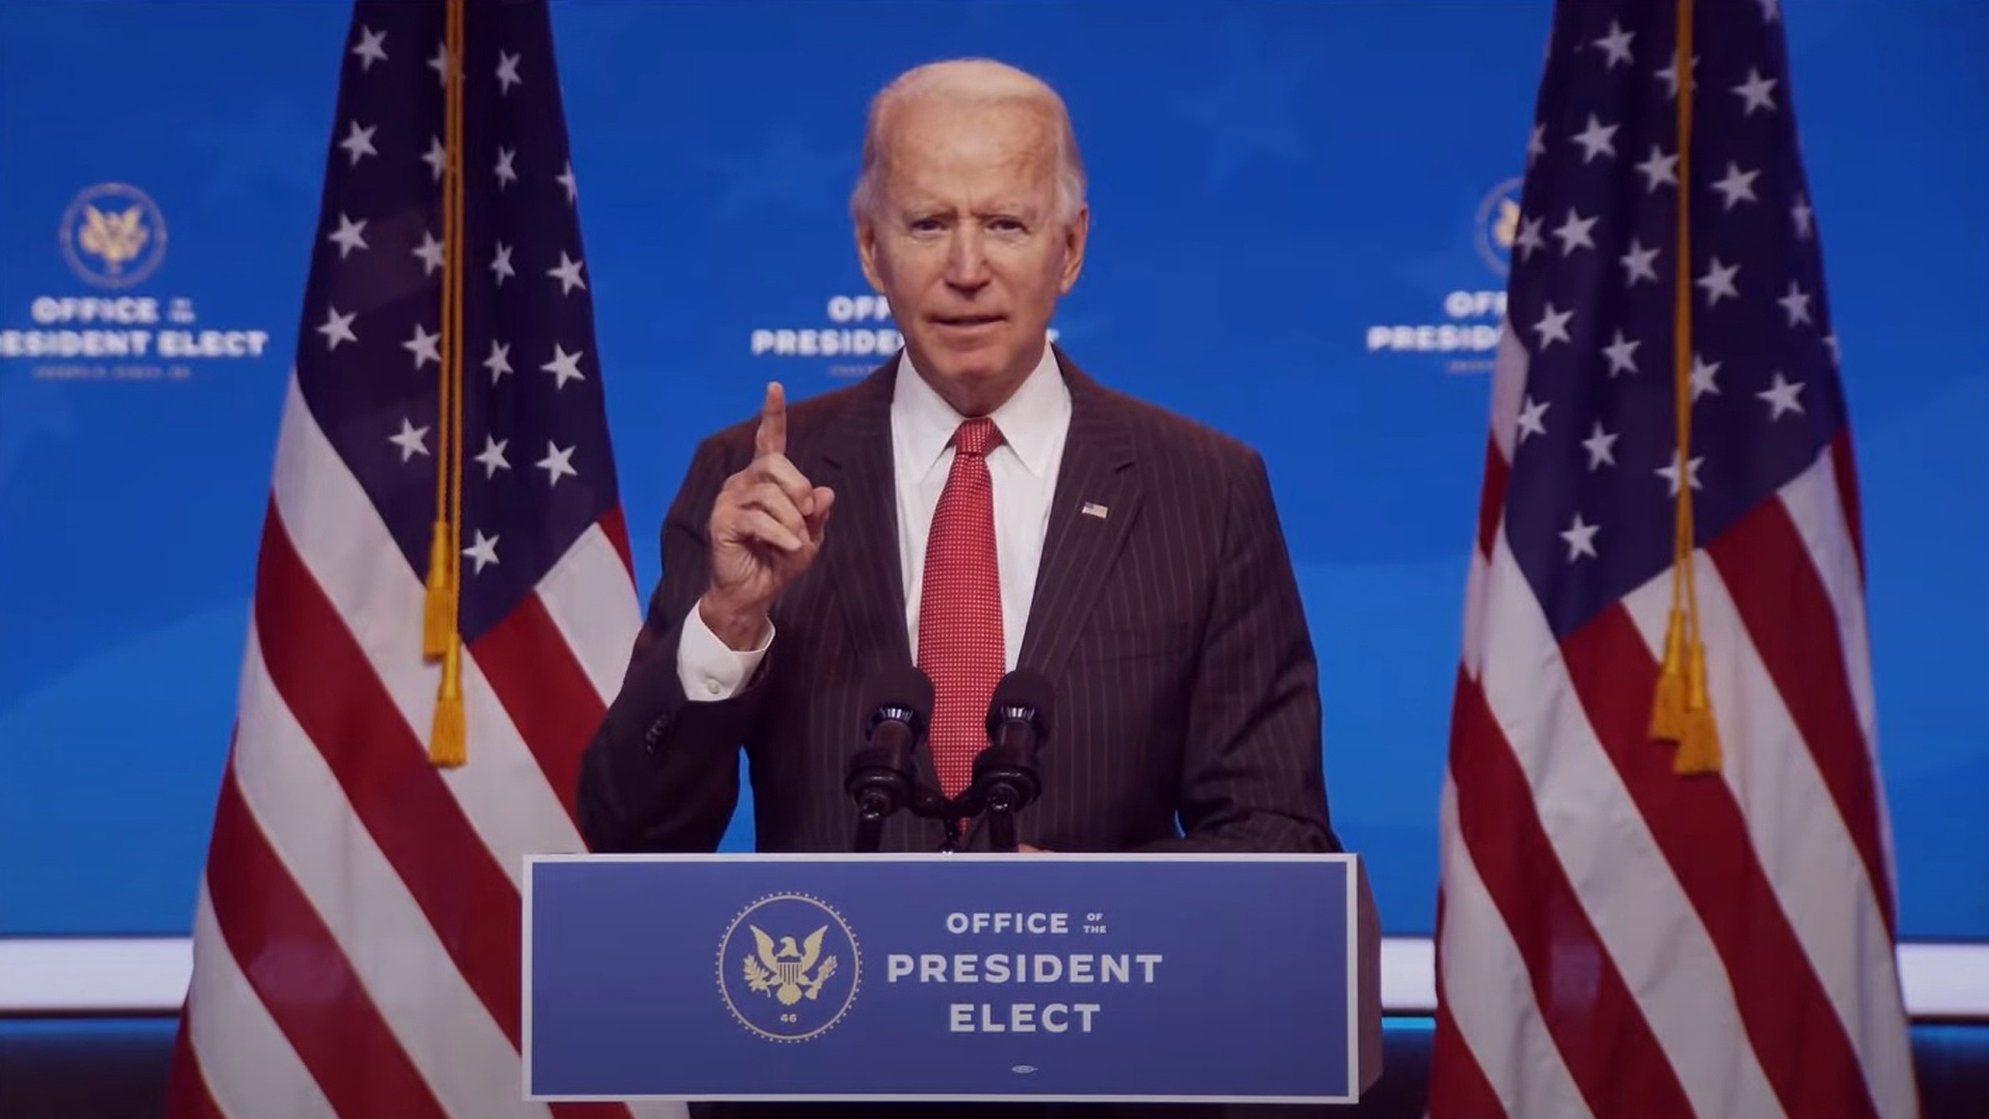 epa08830998 A frame grab from a handout video released by the Office of the President Elect shows US President-Elect Joseph R. Biden addressing the media during a press conference in Wilmington, Delaware, USA, 19 November 2020 (issued 20 November 2020). Georgia state authorities confirmed 19 November US President-elect Joe Biden won the the election in Georgia following a recount. It was the first time the Democrats won a presidential election race in Georgia since 1992 when Bill Clinton was elected.  EPA/OFFICE OF THE PRESIDENT ELECT/HANDOUT BEST QUALITY AVAILABLE HANDOUT EDITORIAL USE ONLY/NO SALES